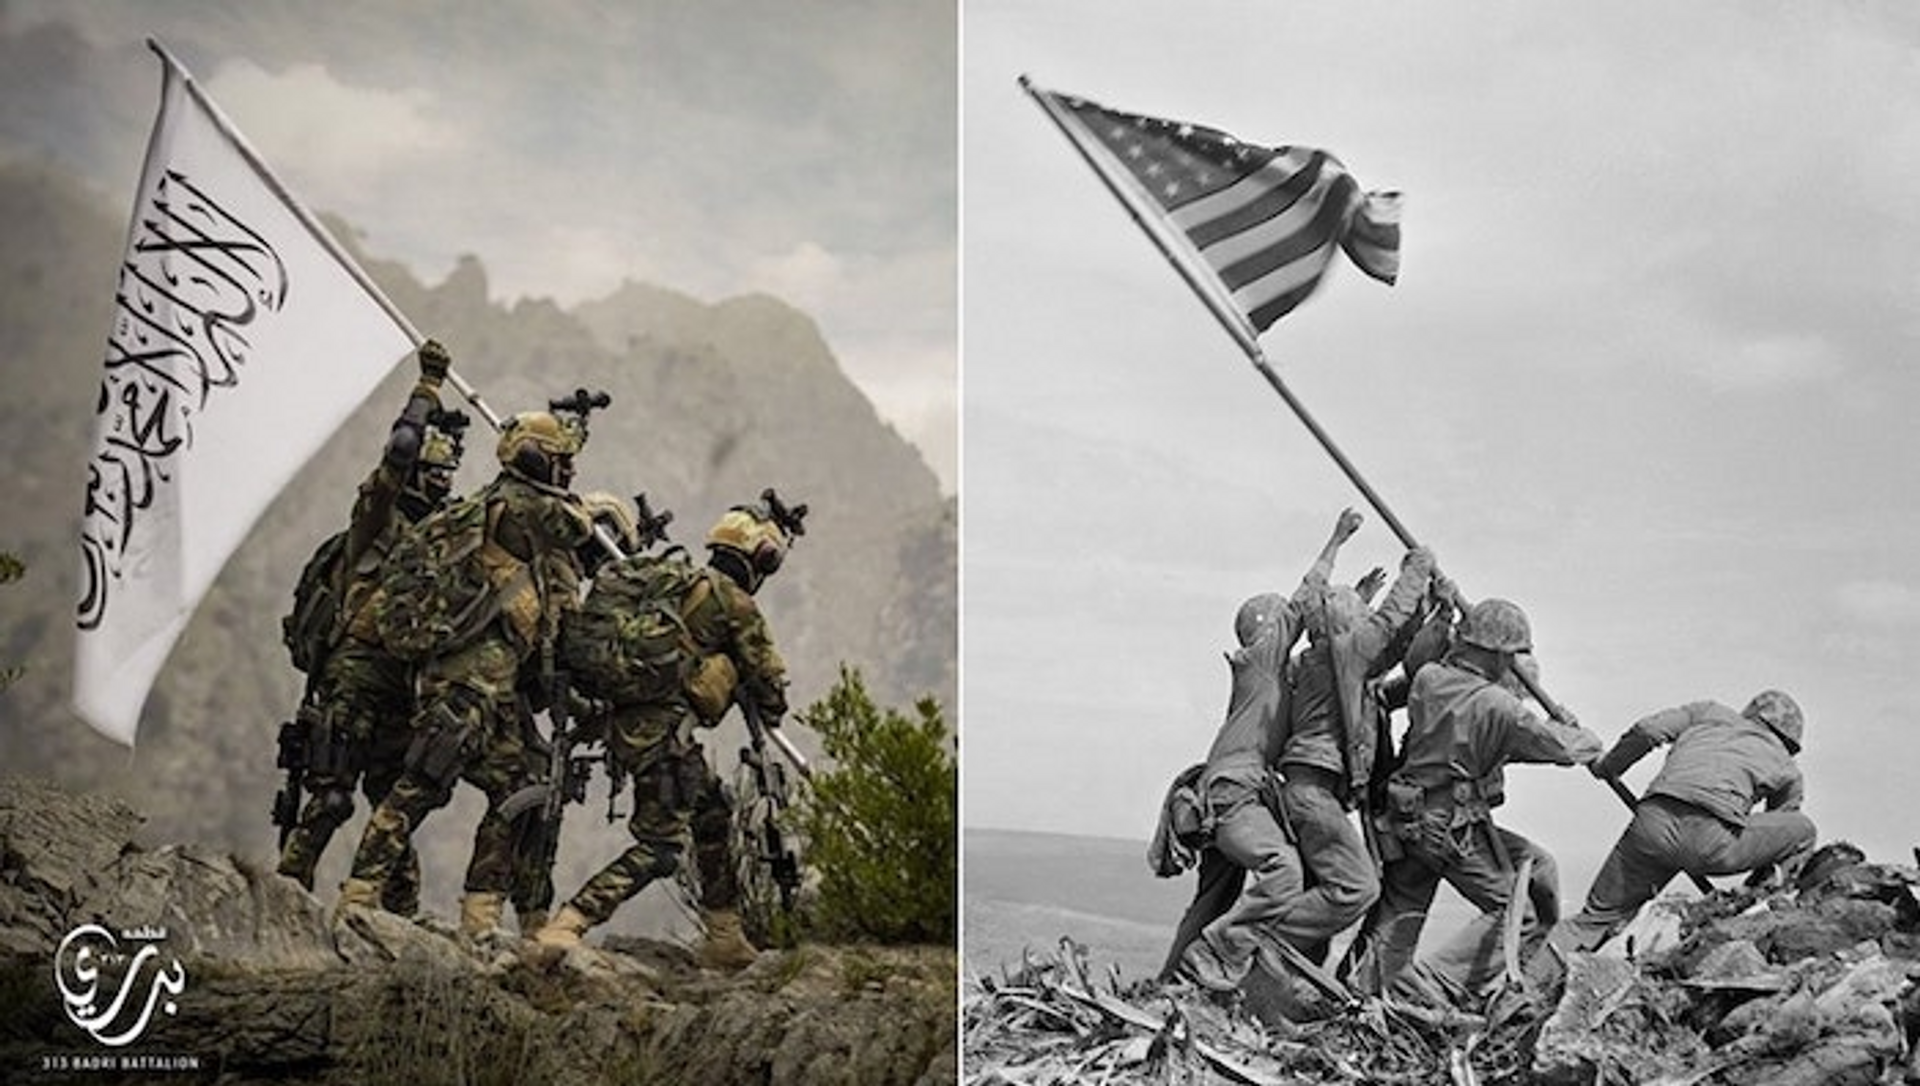 Taliban fighters stage photo to look like iconic WWII photo of US troops raising flag over Iwo Jima. - Sputnik International, 1920, 21.08.2021